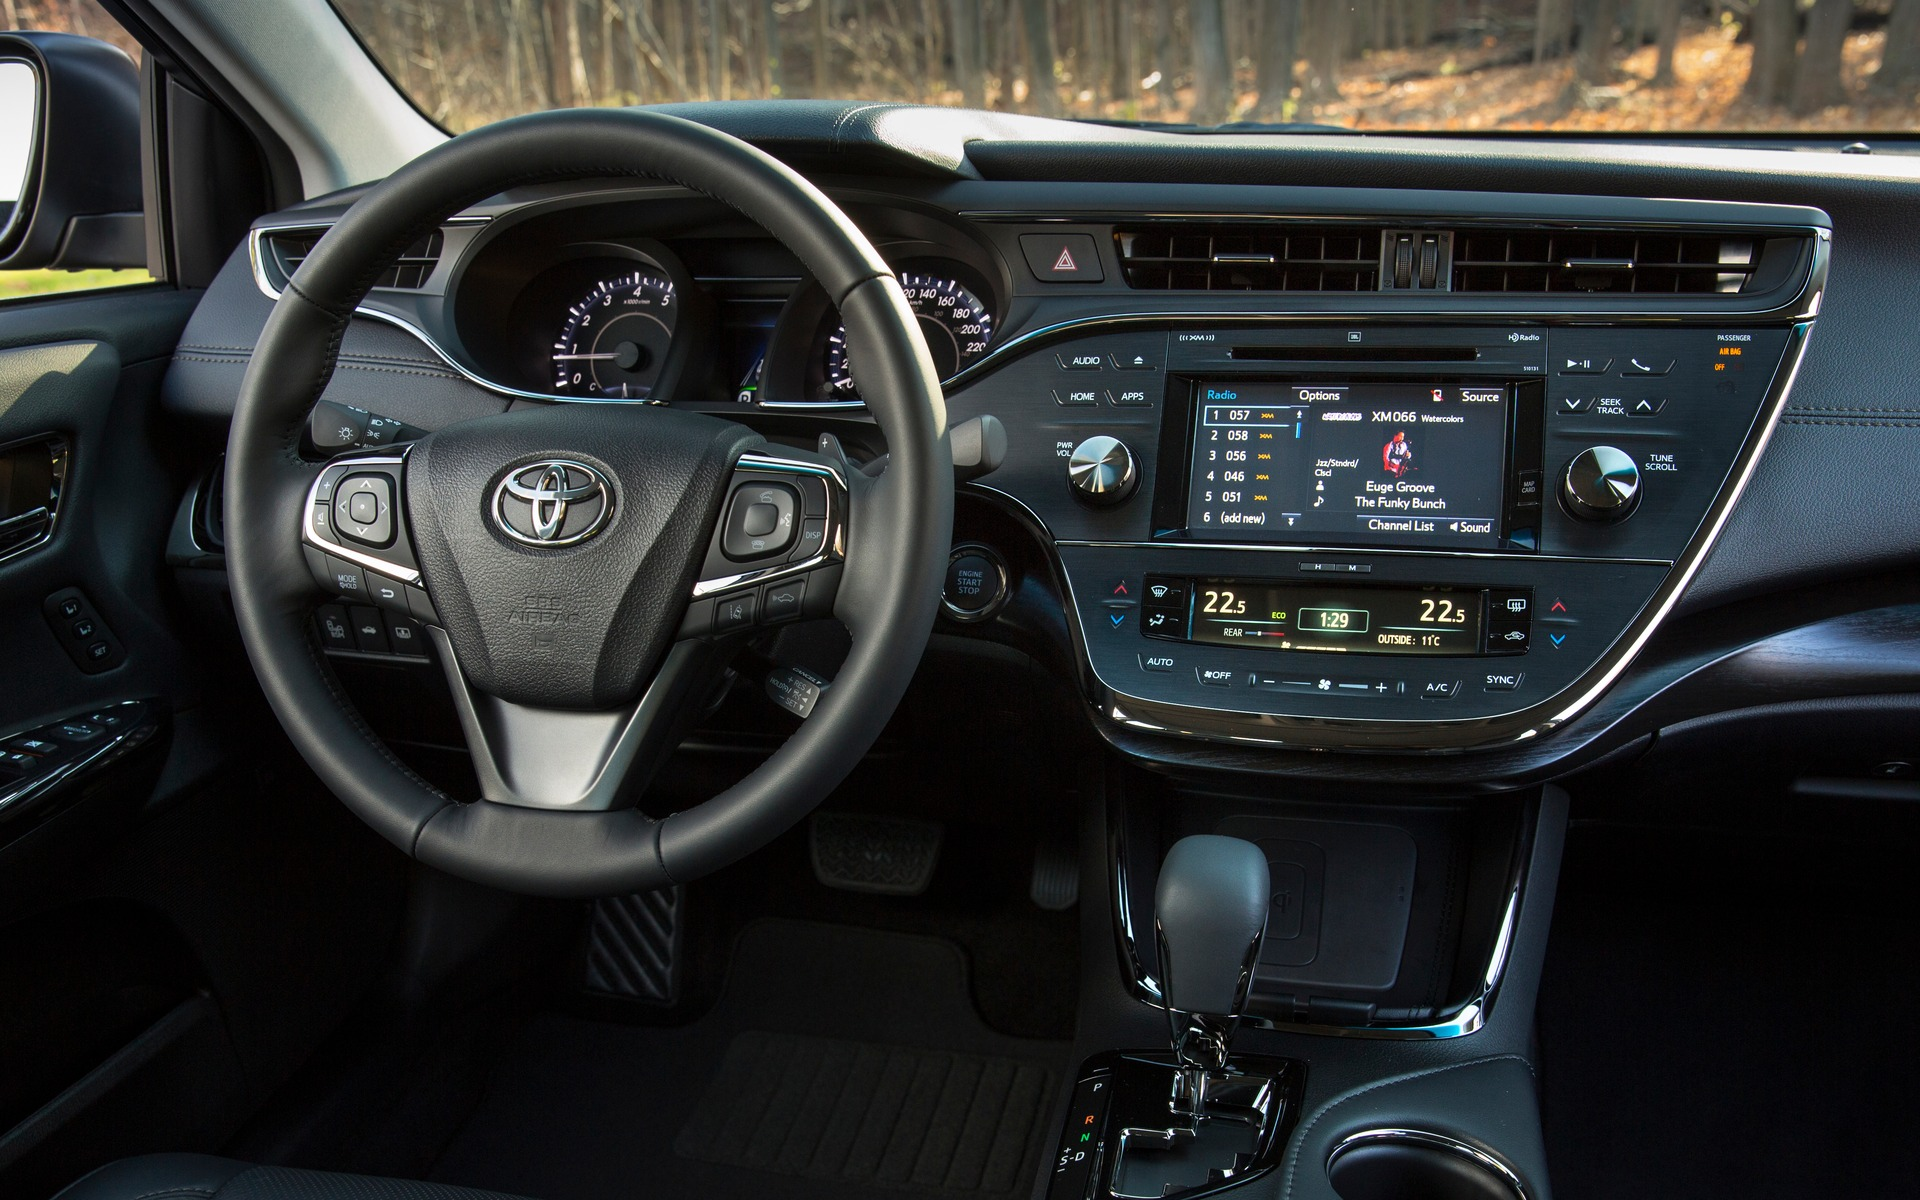 2017 Toyota Avalon photos - 3/14 - The Car Guide